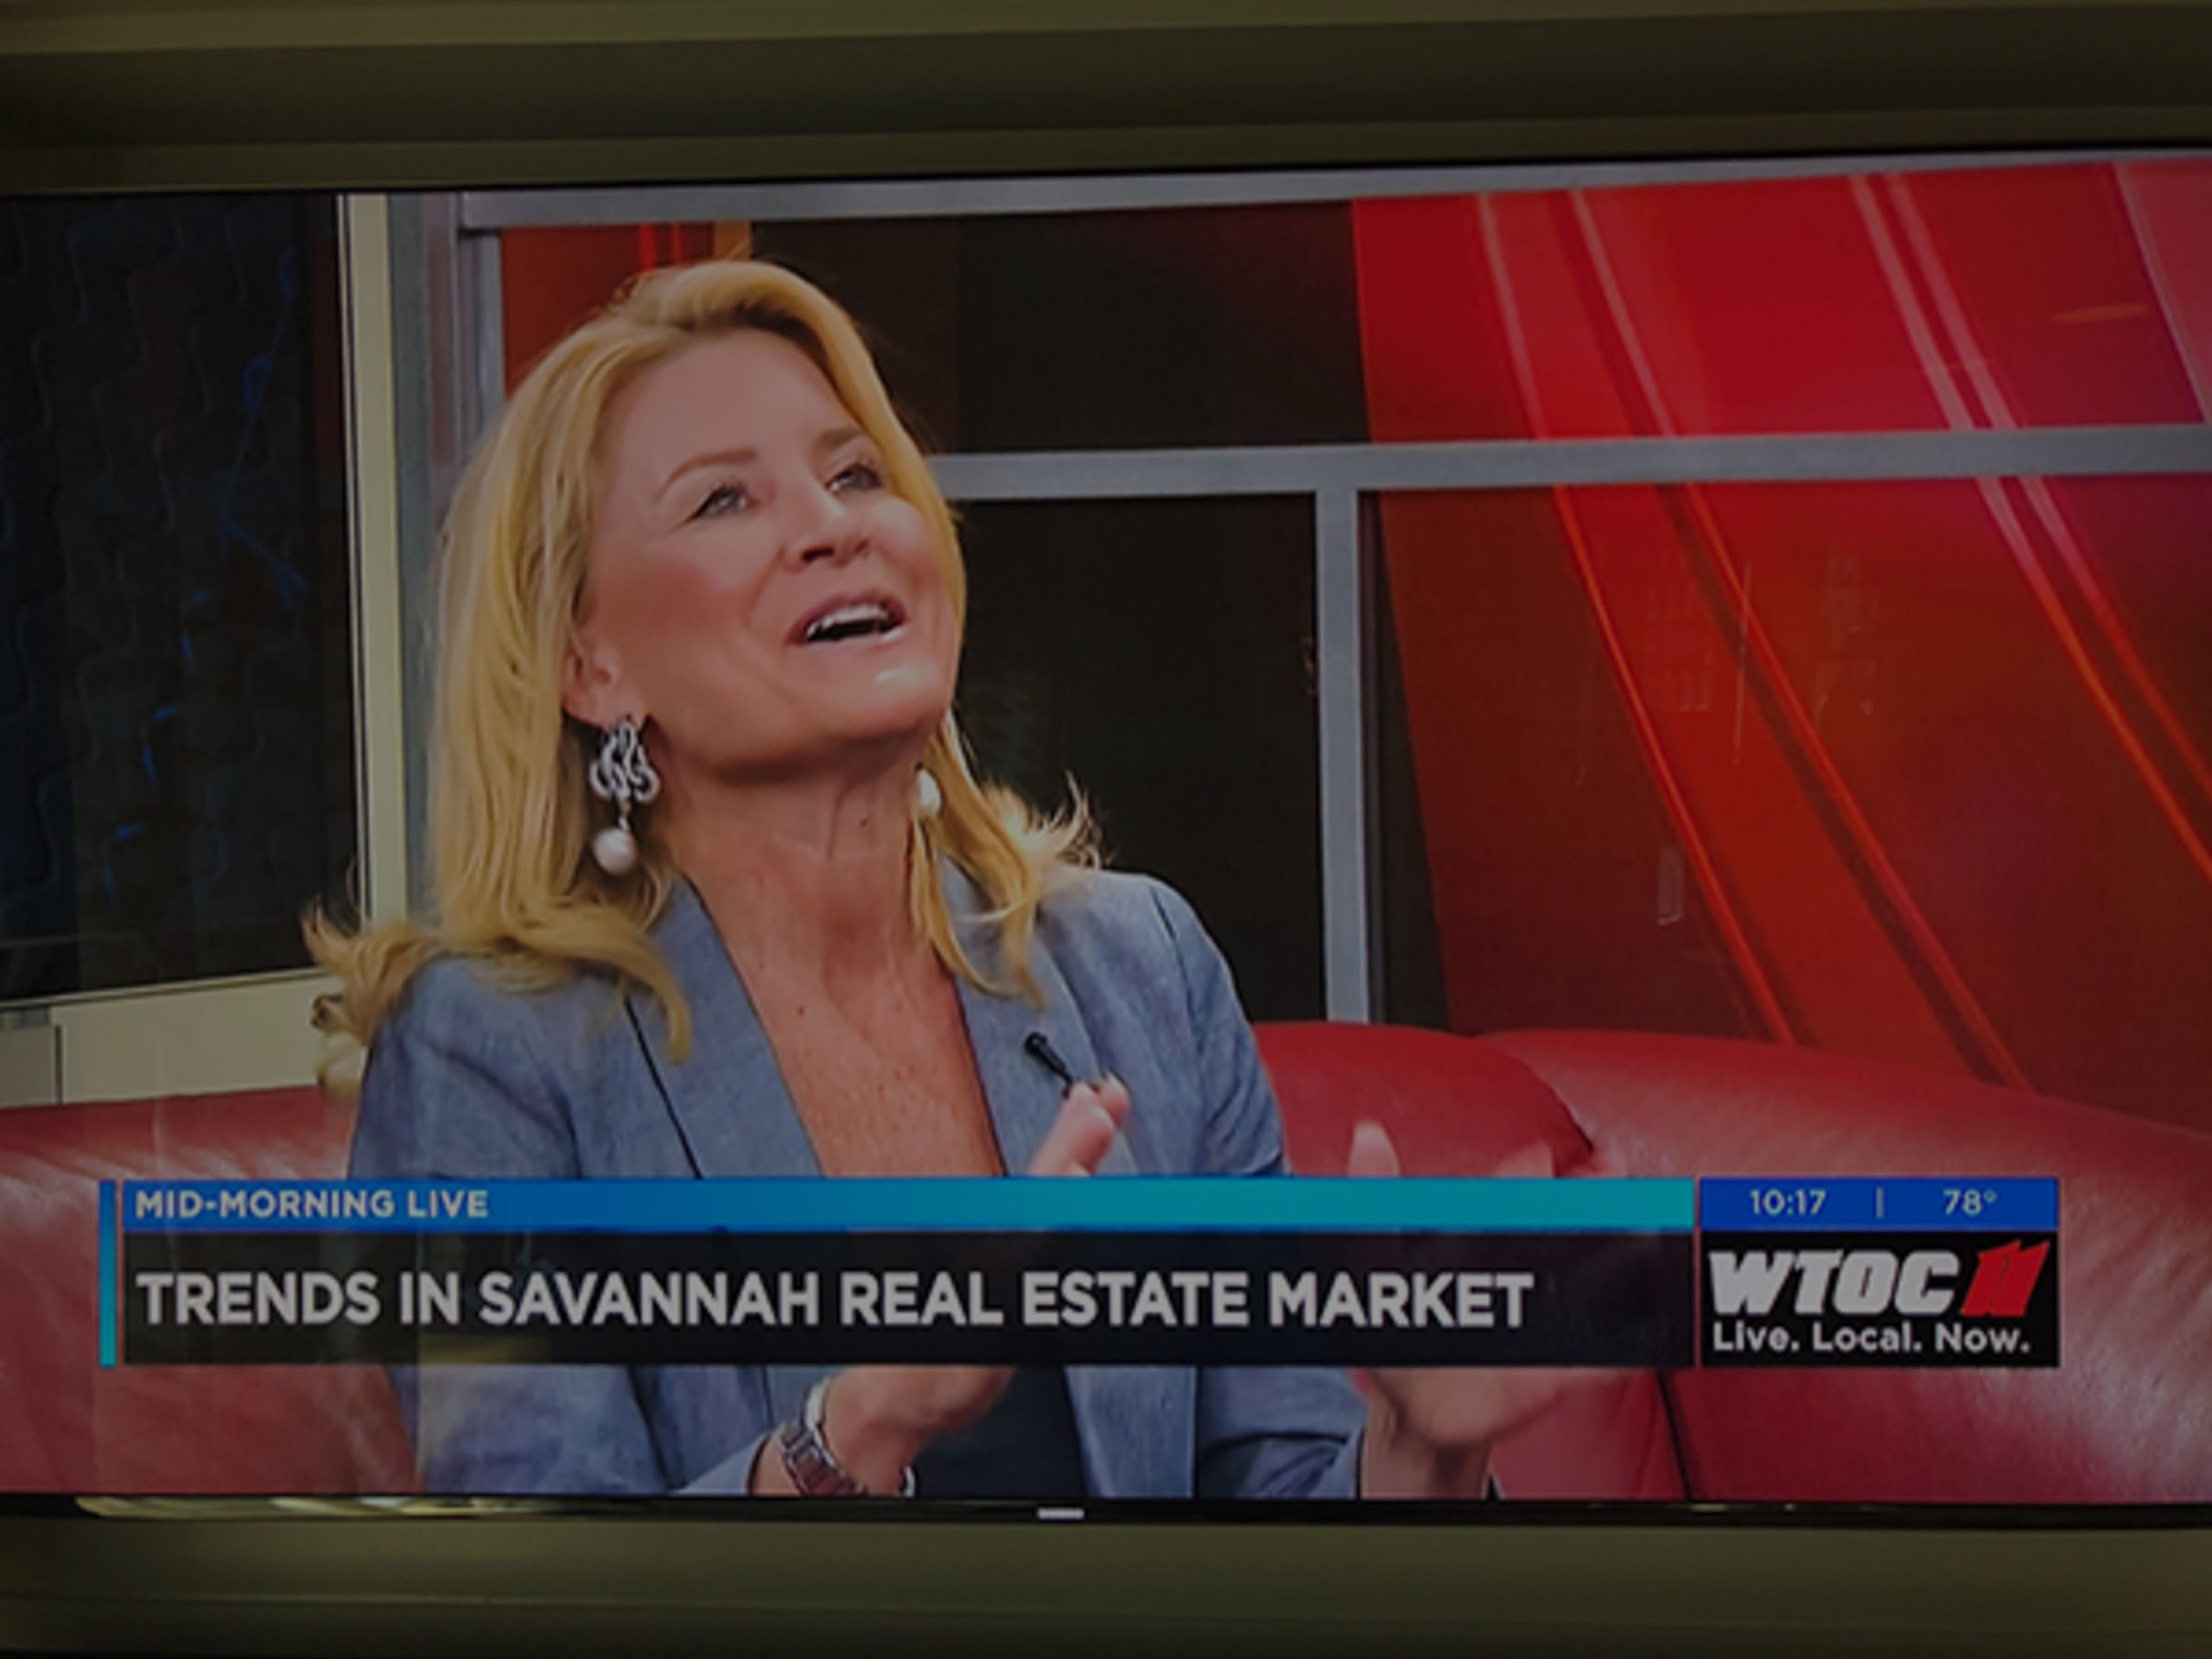 Savannah Real Estate Trends